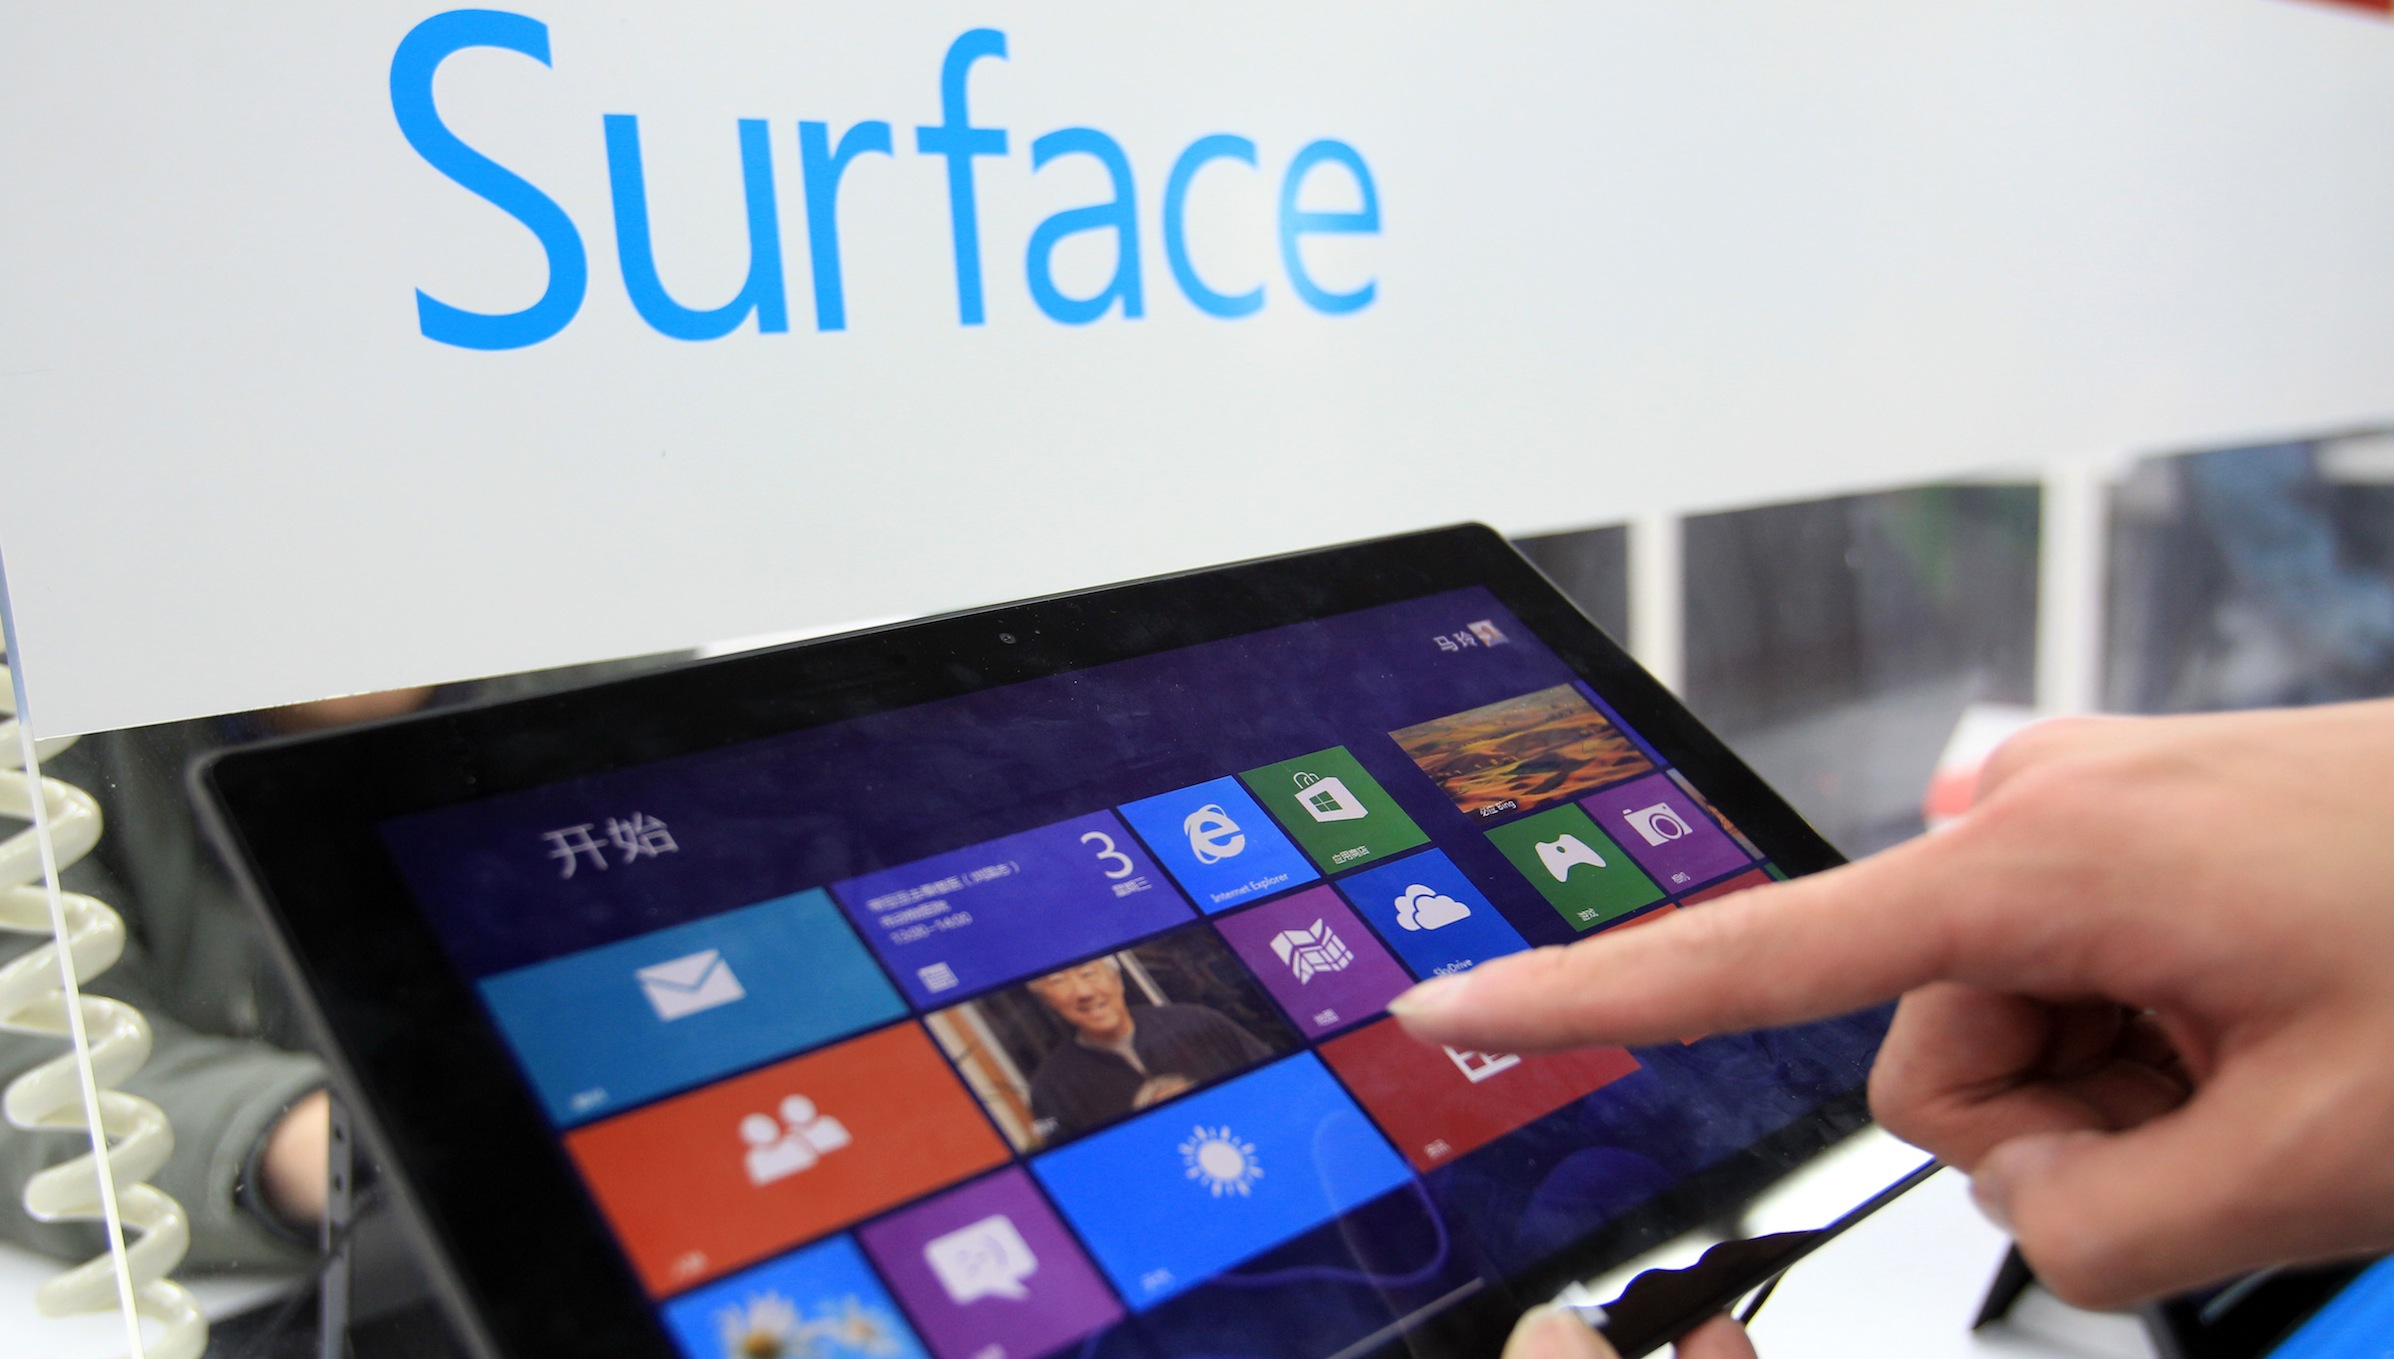 --FILE--A Chinese shopper tries out a Microsoft Surface Pro tablet PC at a home appliances store in Shanghai, China, 3 April 2013.   Microsoft Corp.s after-sales service of its Surface tablet has attracted criticism from Chinas state-owned radio, following similar reports in the past month targeting Apple Inc. The Surface Pro should follow the nations law requiring notebook computers to have a one-year repair warranty for the whole device and a two-year warranty for main parts, as compared with the companys one-year pledge for both, China National Radio reported on Monday (8 April 2013). Joanna Li, a Beijing-based spokeswoman for Microsoft, said she couldnt immediately comment on the report today.